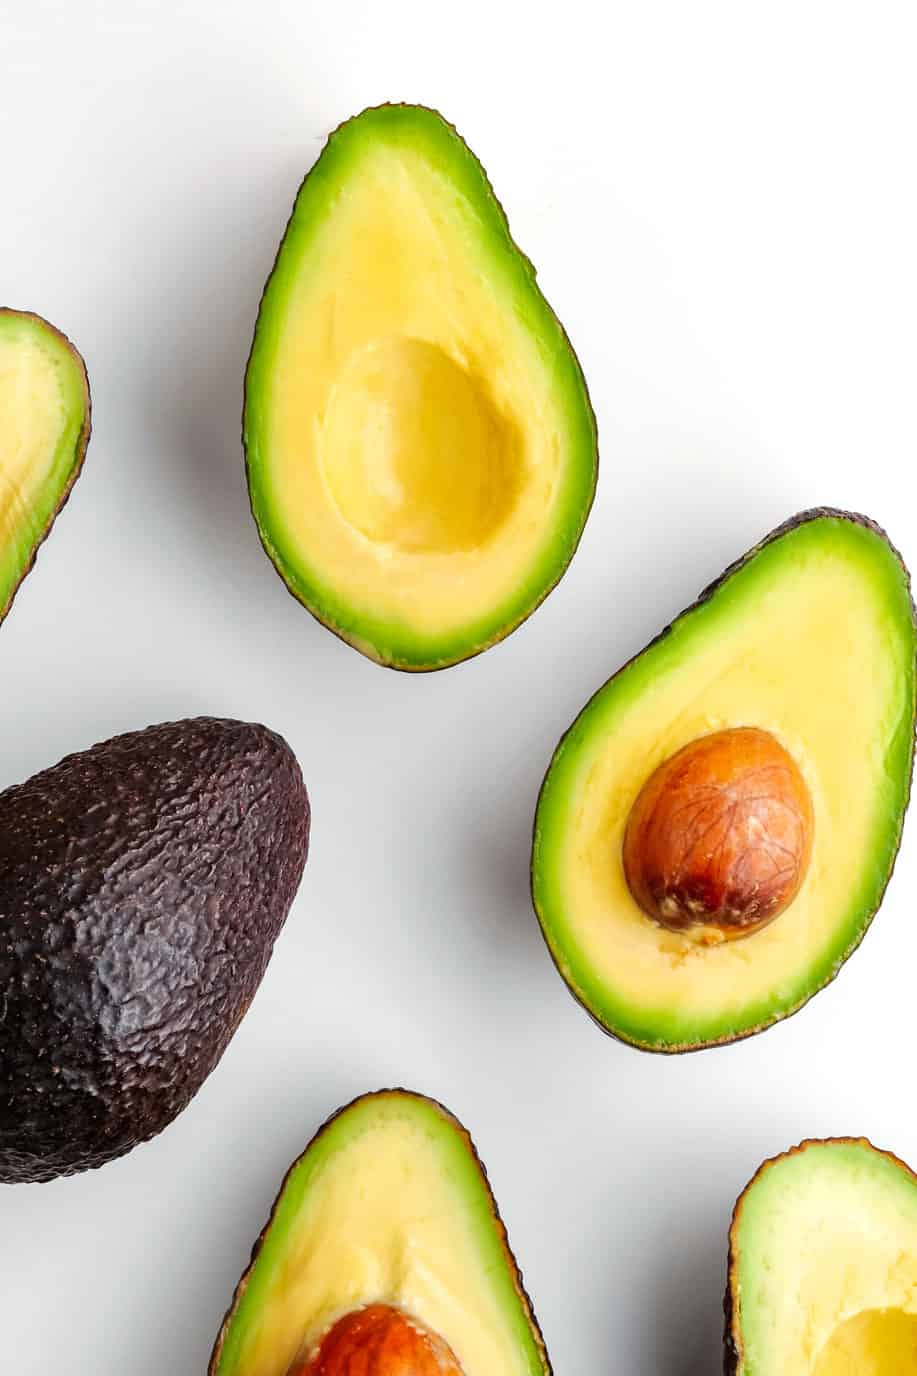 The Ultimate Avocado Guide - from how to pick an avocado, how to cut avocados, how to store avocados and how to use avocados.